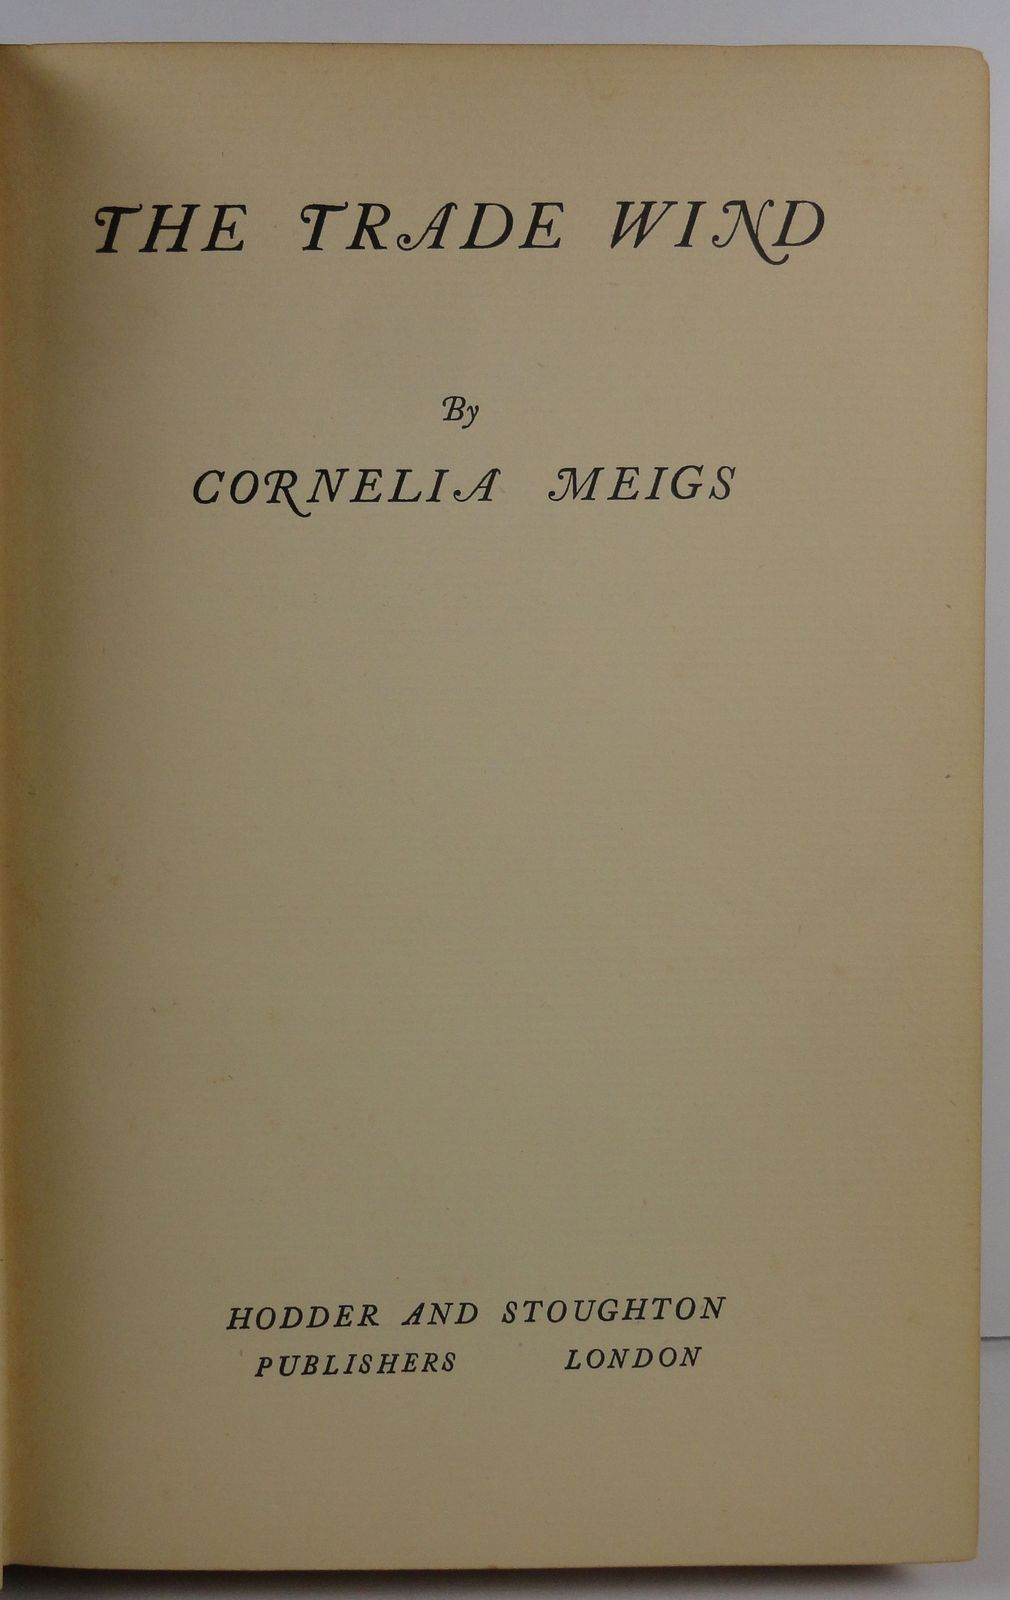 The Trade Wind by Cornelia Meigs Hodder and Stoughton